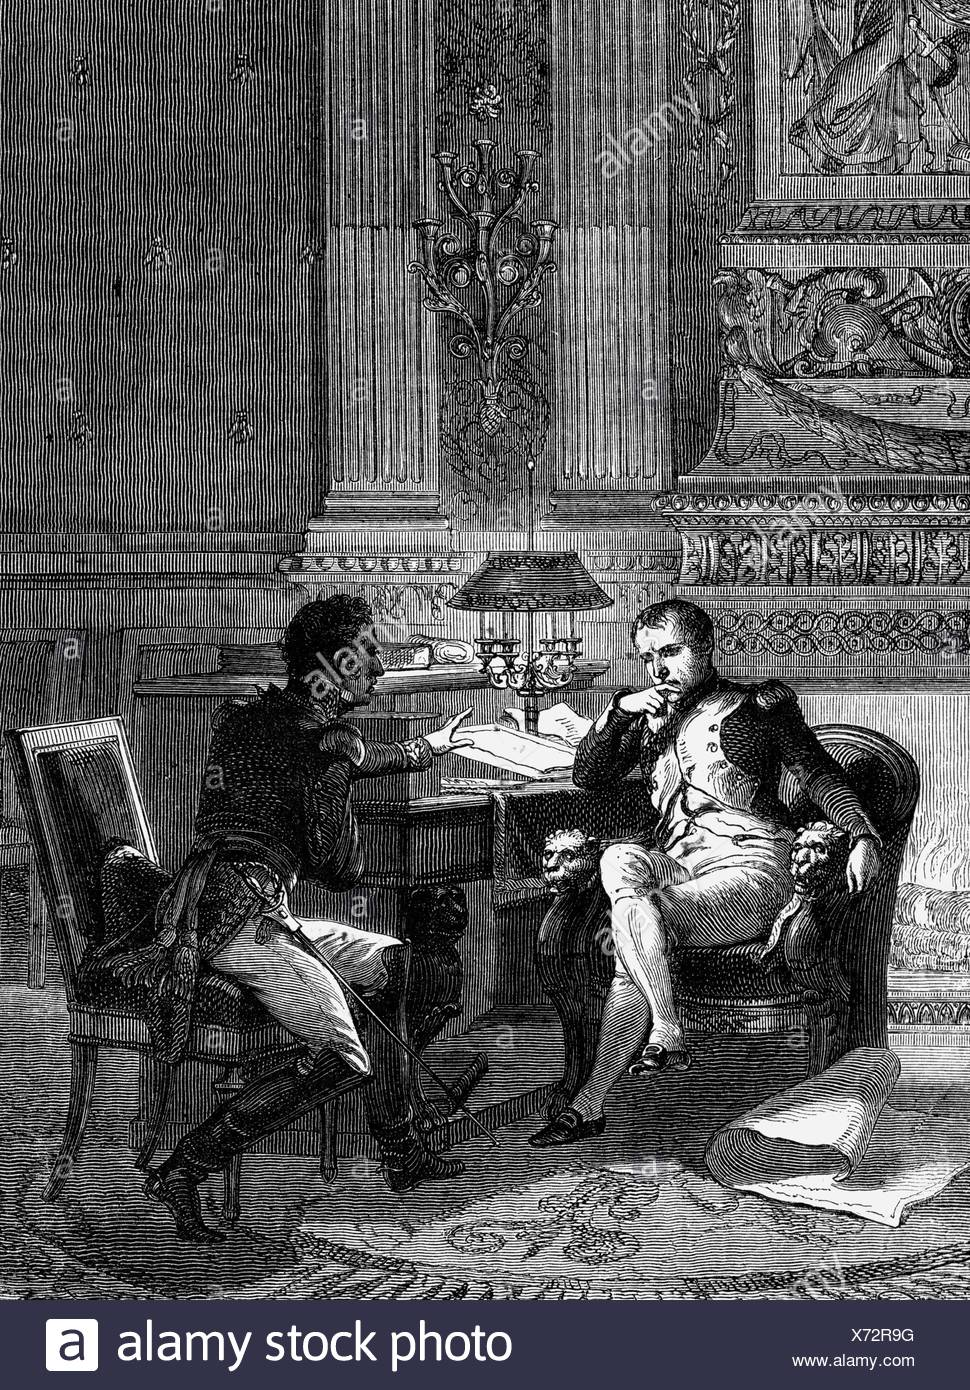 Foy, Maximilien Sebastien, 3.2.1775 - 28.11.1825, French general, reporting to Emperor Napoleon I about the situation at  the Lines of Torres Vedras, 1811, wood engraving, 19th century, , Additional-Rights-Clearances-NA - Stock Image